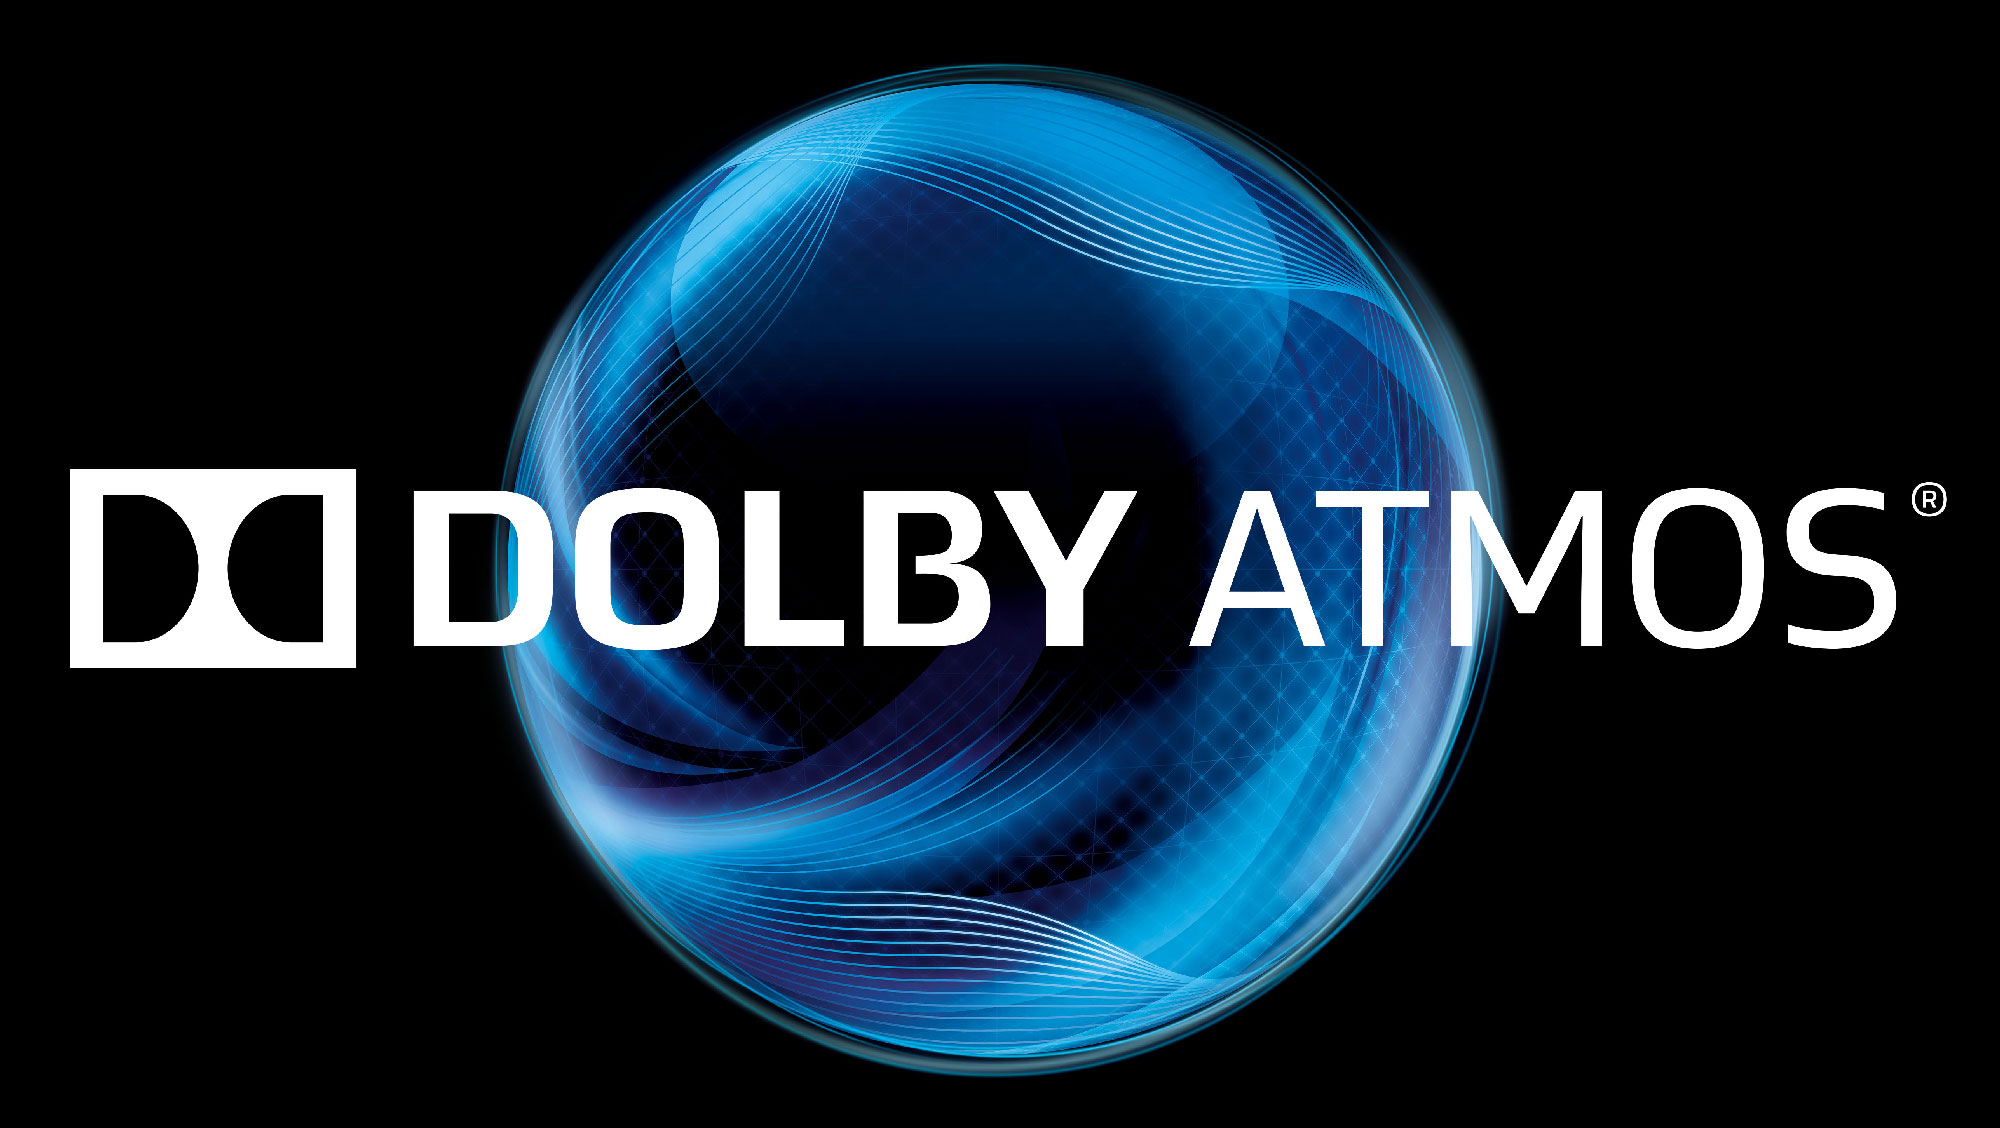 10 Things You Need To Know About Dolby Atmos